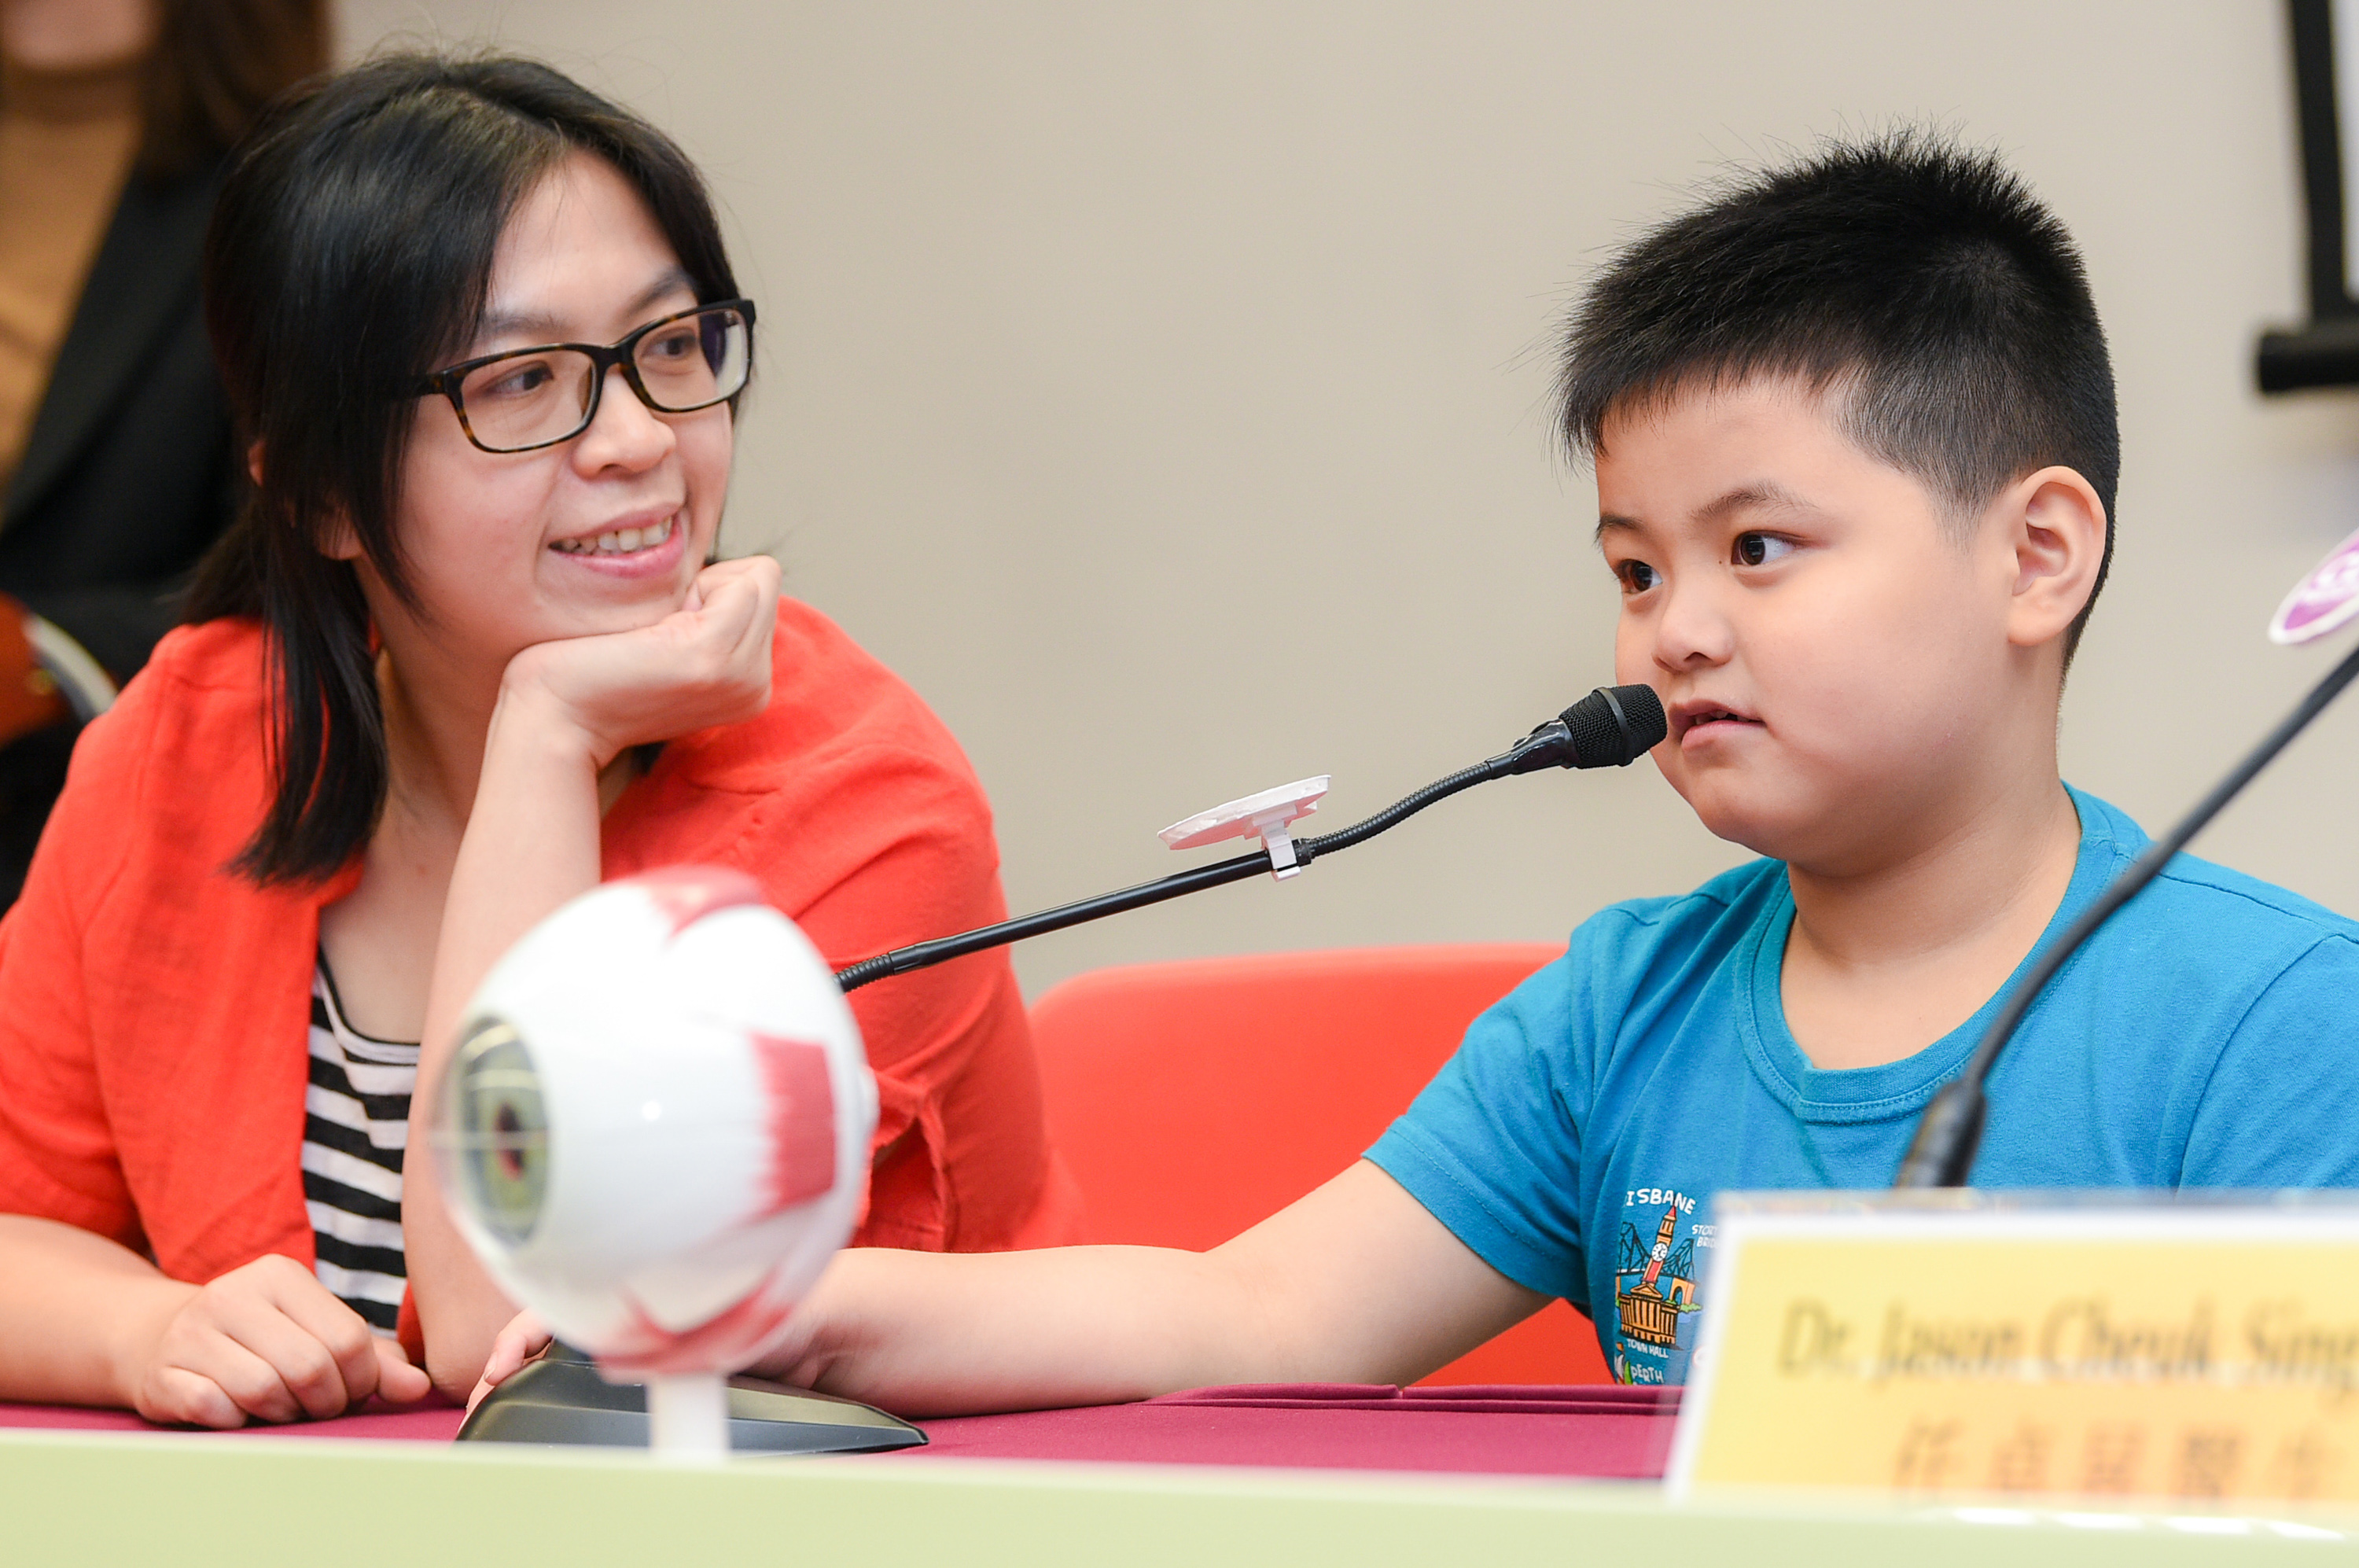 Gerrick (right) spends three to four hours watching TV or using smartphones every day. His mother Mrs. Tsang says in order to help his son prevent from myopia progression, she got him to join the LAMP study and will limit the time he spend on electronic devices in the future.